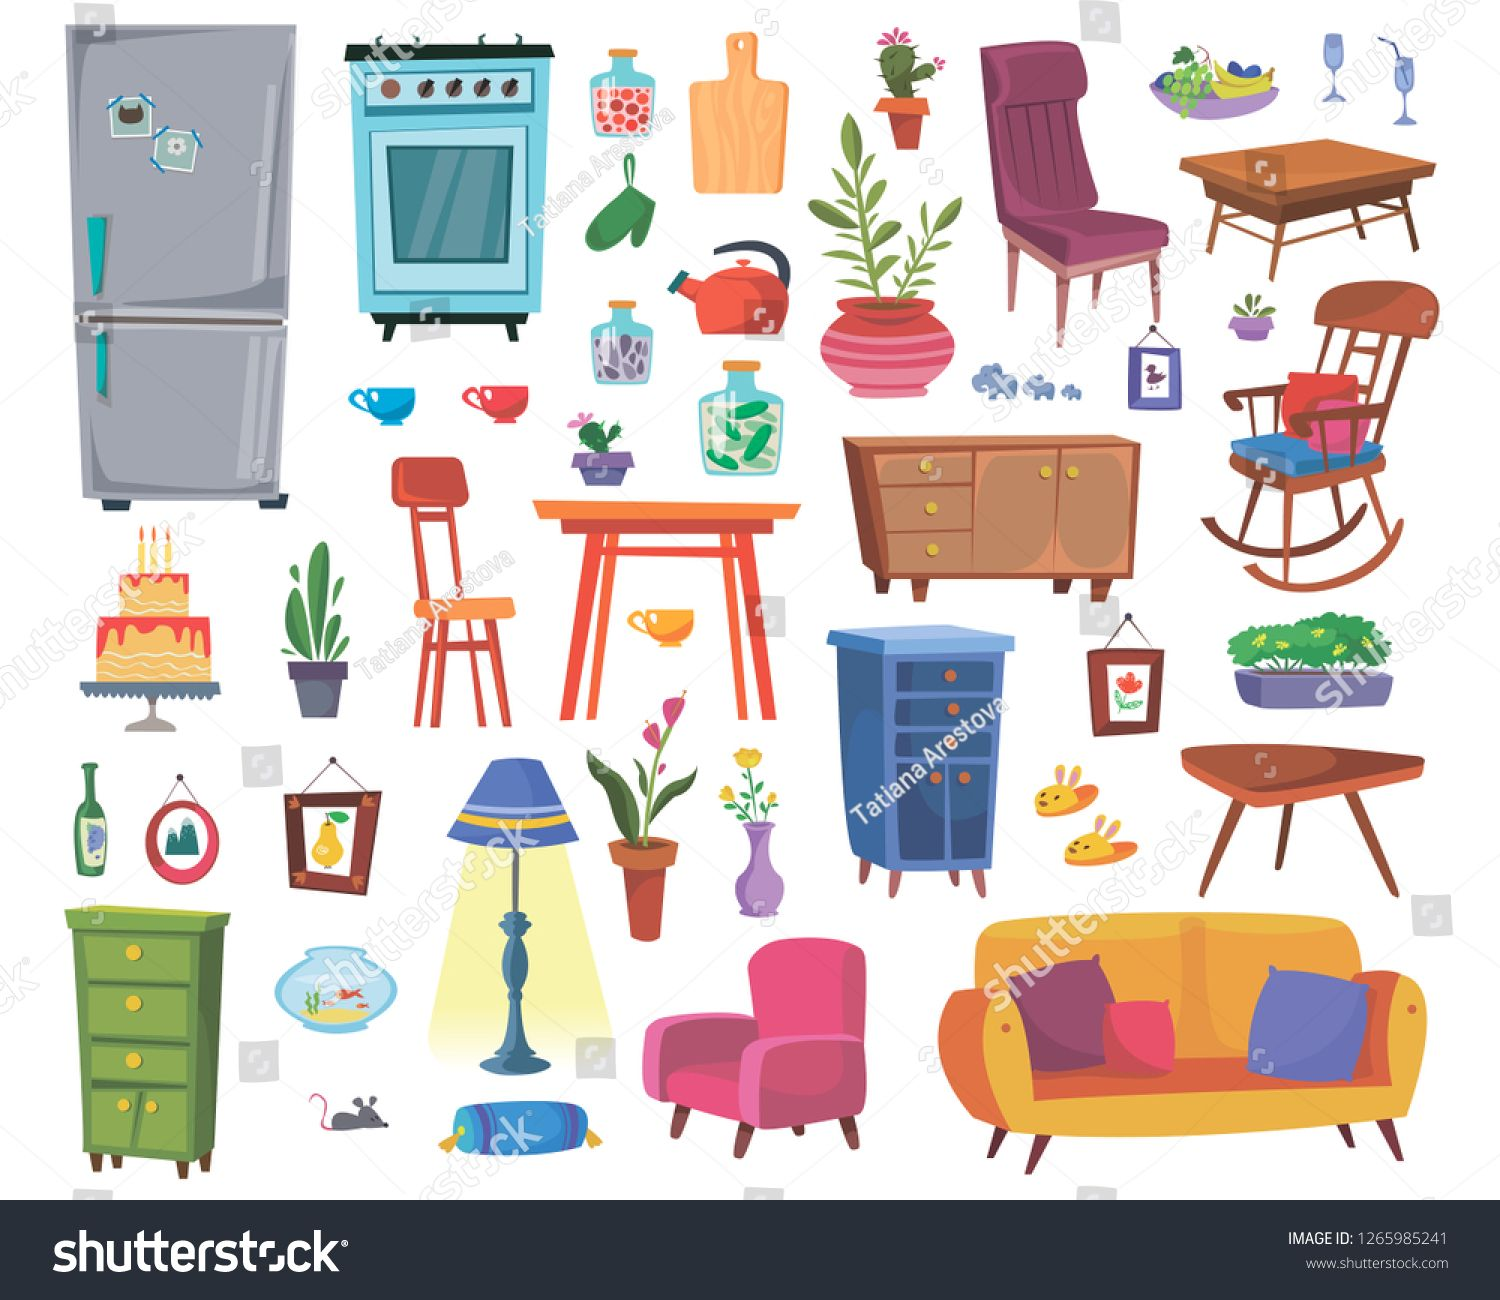 Large Set Of Furniture And Interior Items Kitchen Furnishings Living Room Or Study Vector In Cartoon Style Spo Kitchen Furnishings Cartoon Styles Interior